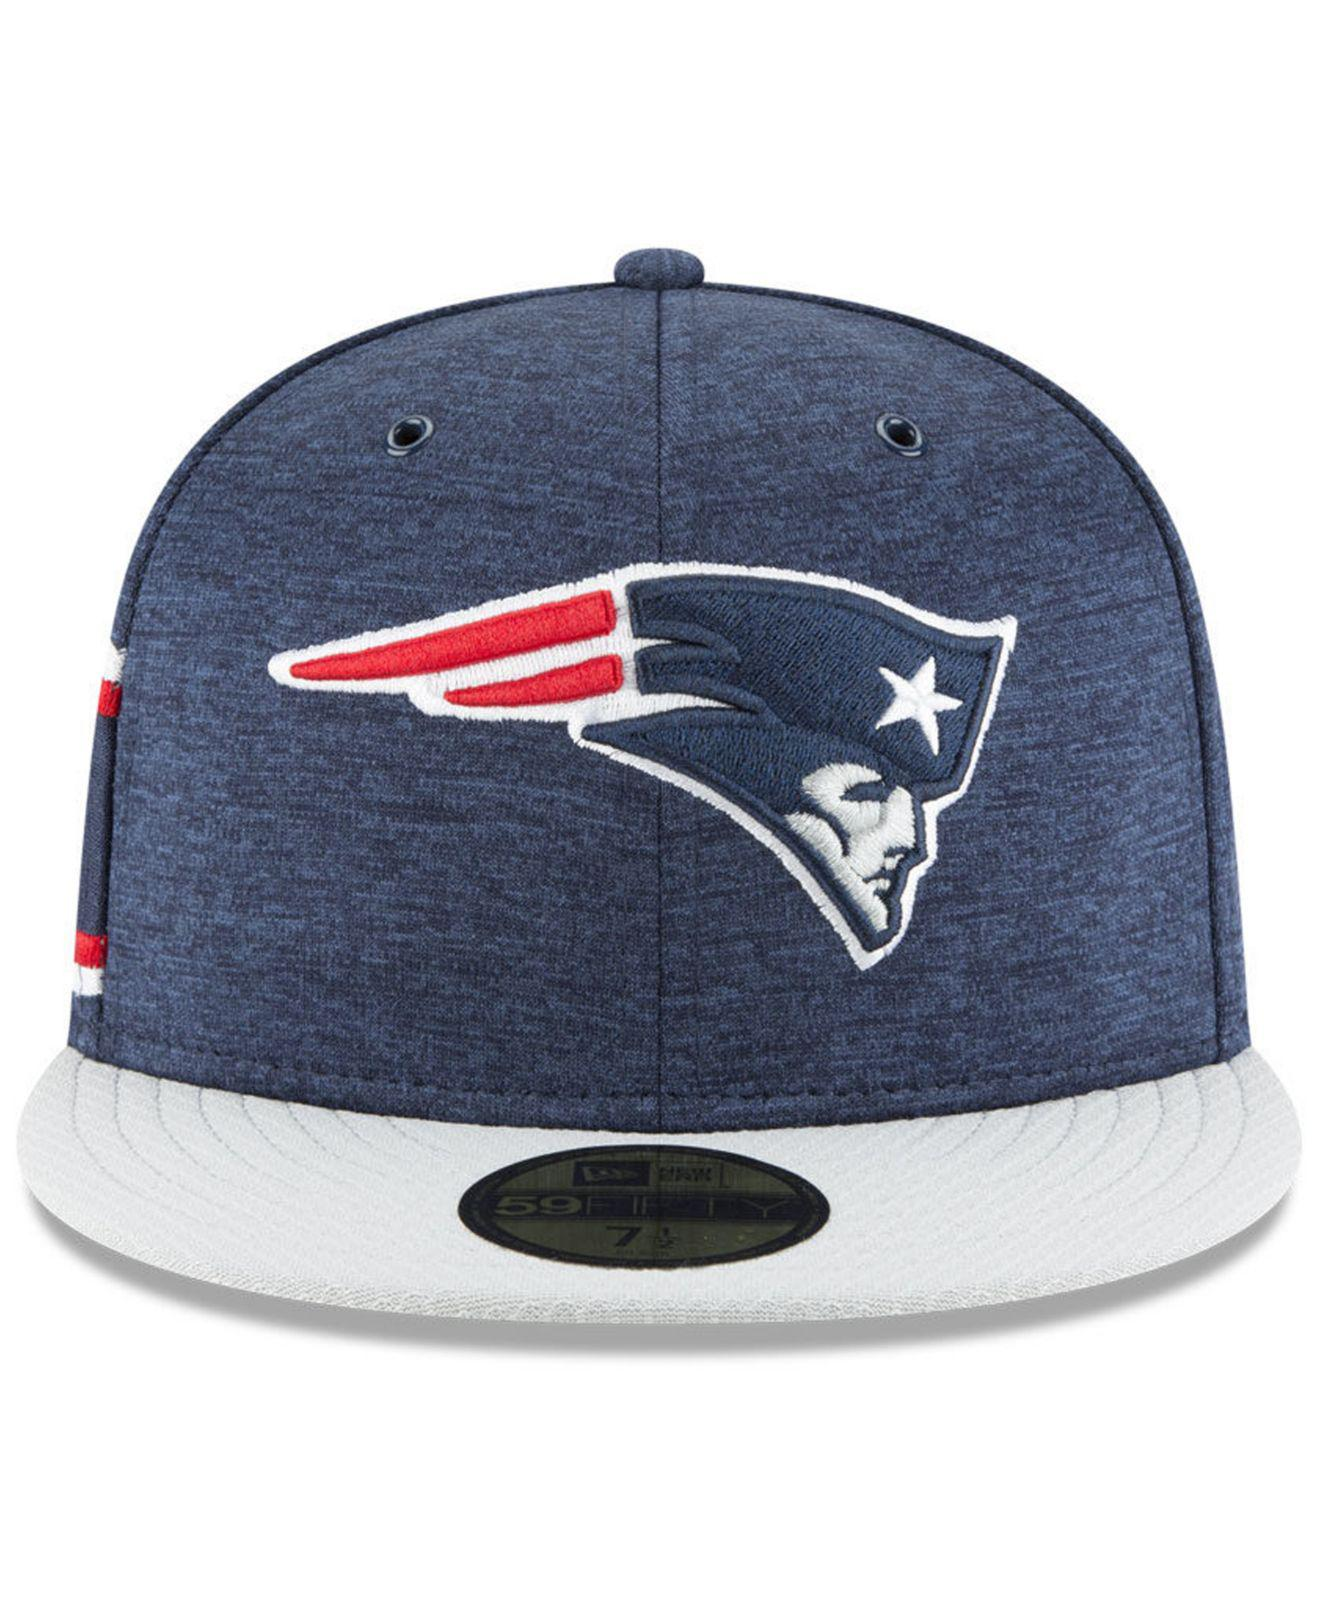 ace6691c0ab Lyst - KTZ New England Patriots On Field Sideline Home 59fifty Fitted Cap  in Blue for Men